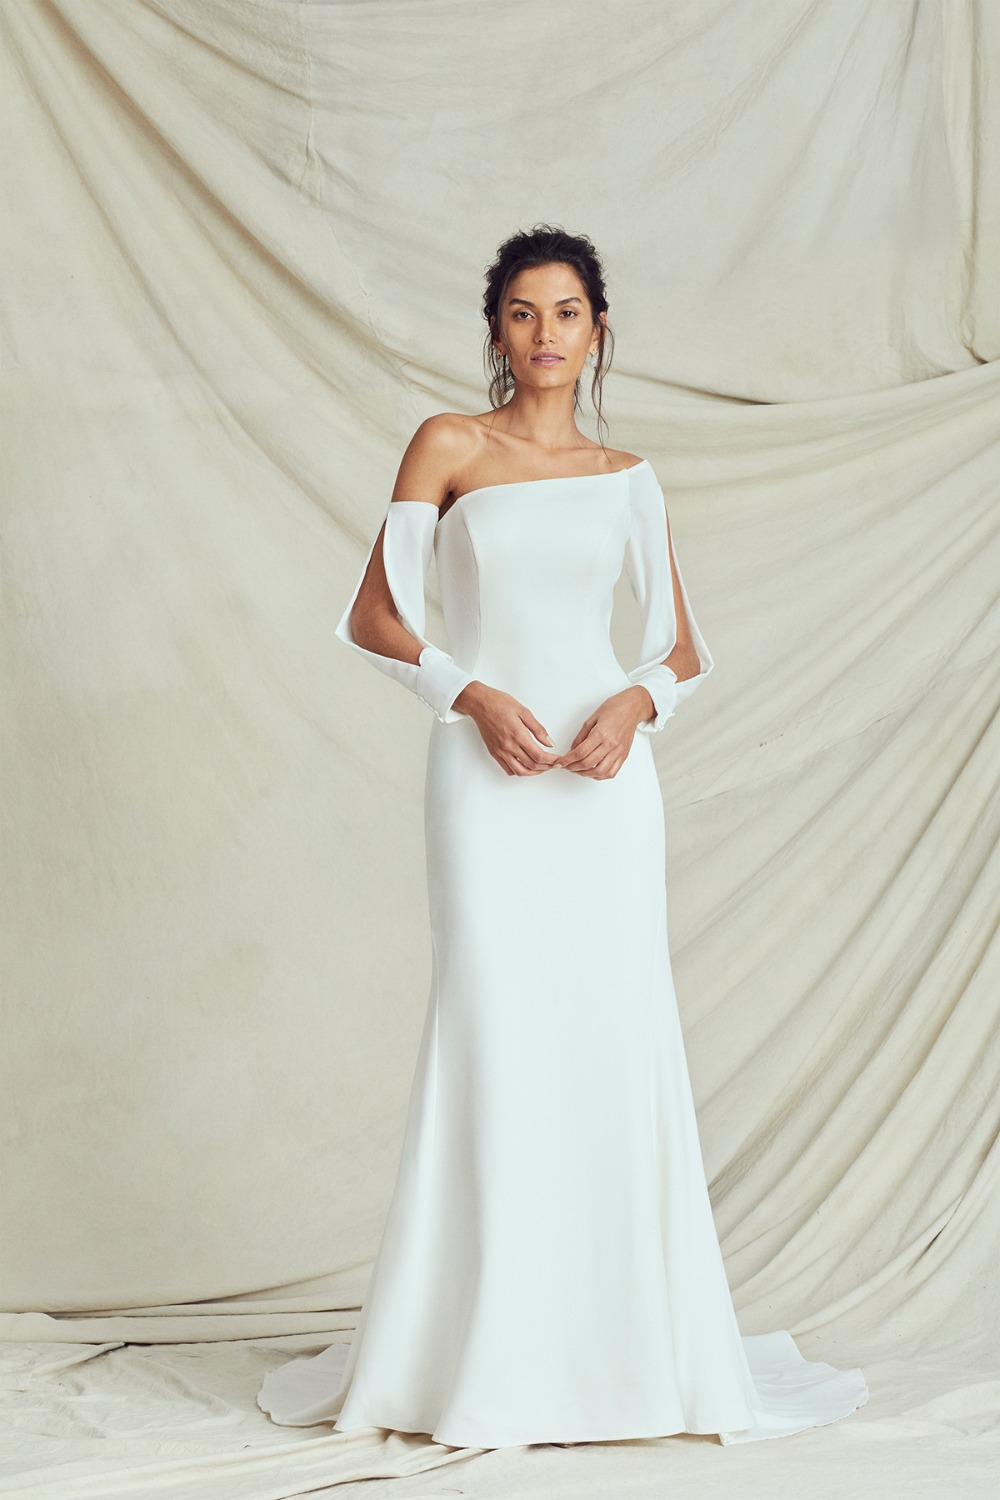 sleek gown with open sleeves by Kelly Faetanini